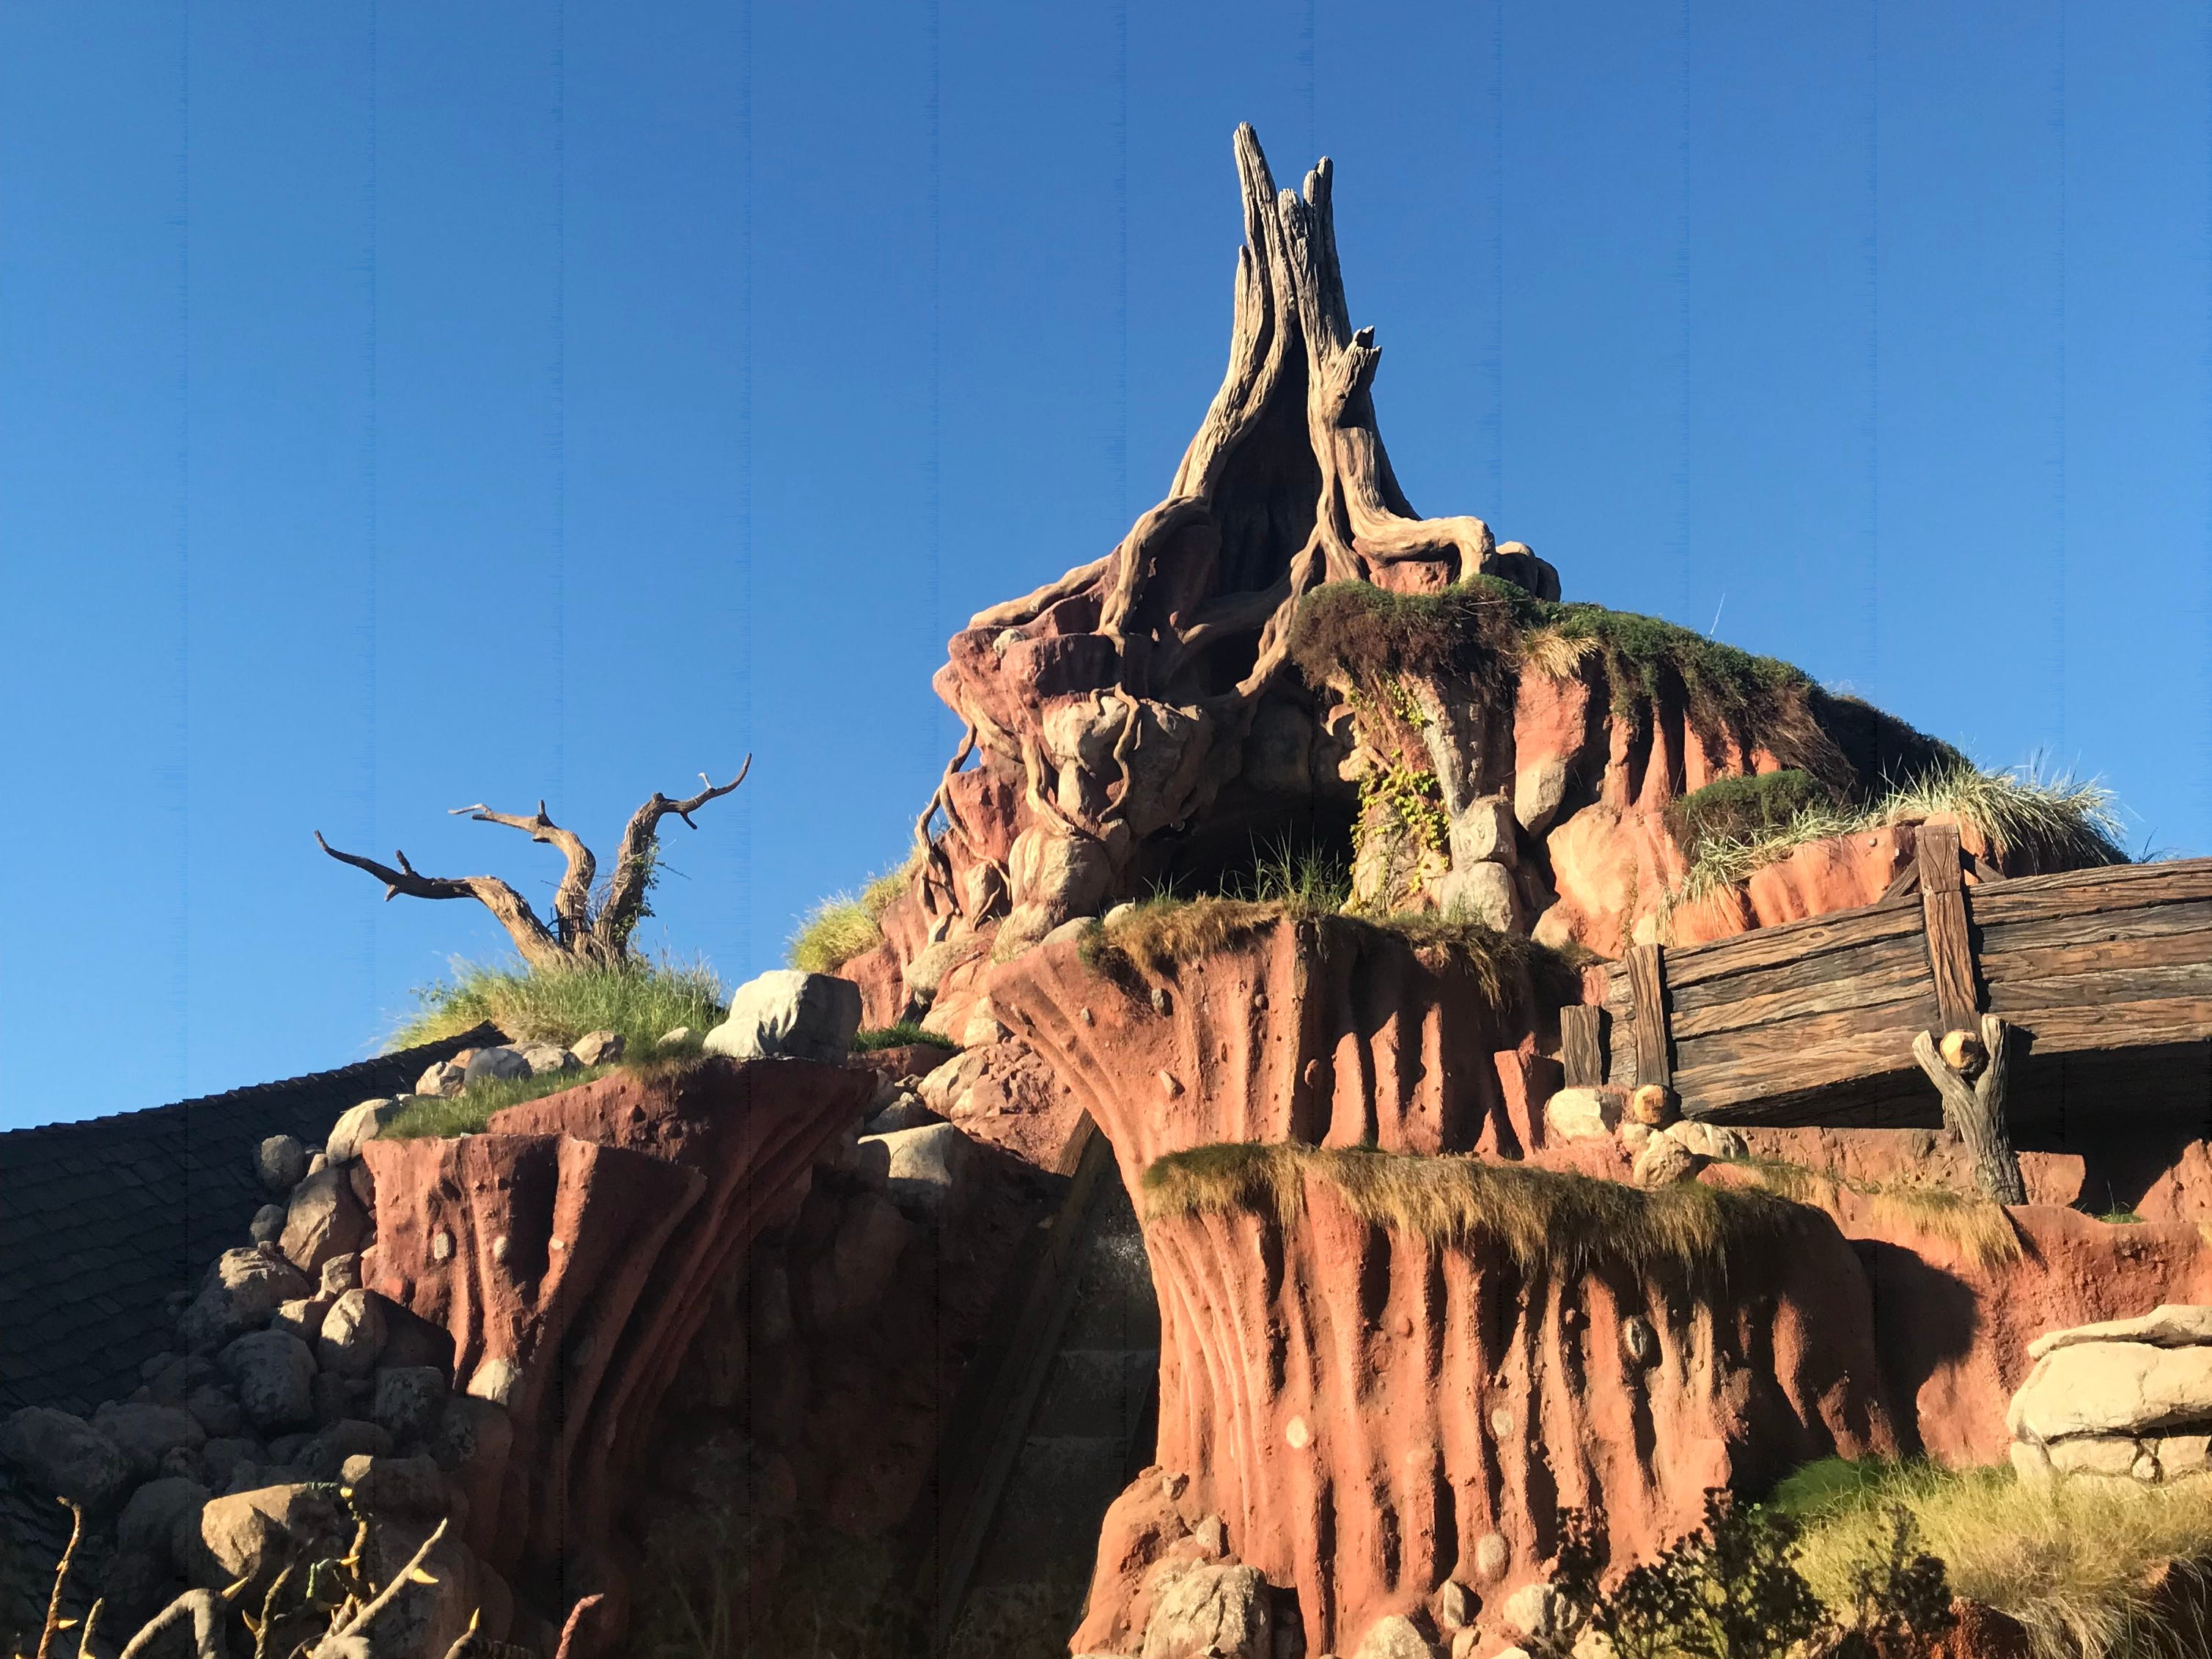 """Slide 20 of 23: Guests who have been visiting Disney Parks for a while might recognize some of the characters in the final scene of Splash Mountain.These characters — including three alligators, three frogs, and a raccoon referred to as The Swamp Boys — originally made their Disneyland debut in the show """"America Sings,"""" which was located in Tomorrowland from 1974 to 1988.However, this month, both Disneyland and Disney World announced that they will be retheming Slash Mountain into a """"Princess and the Frog"""" attraction."""